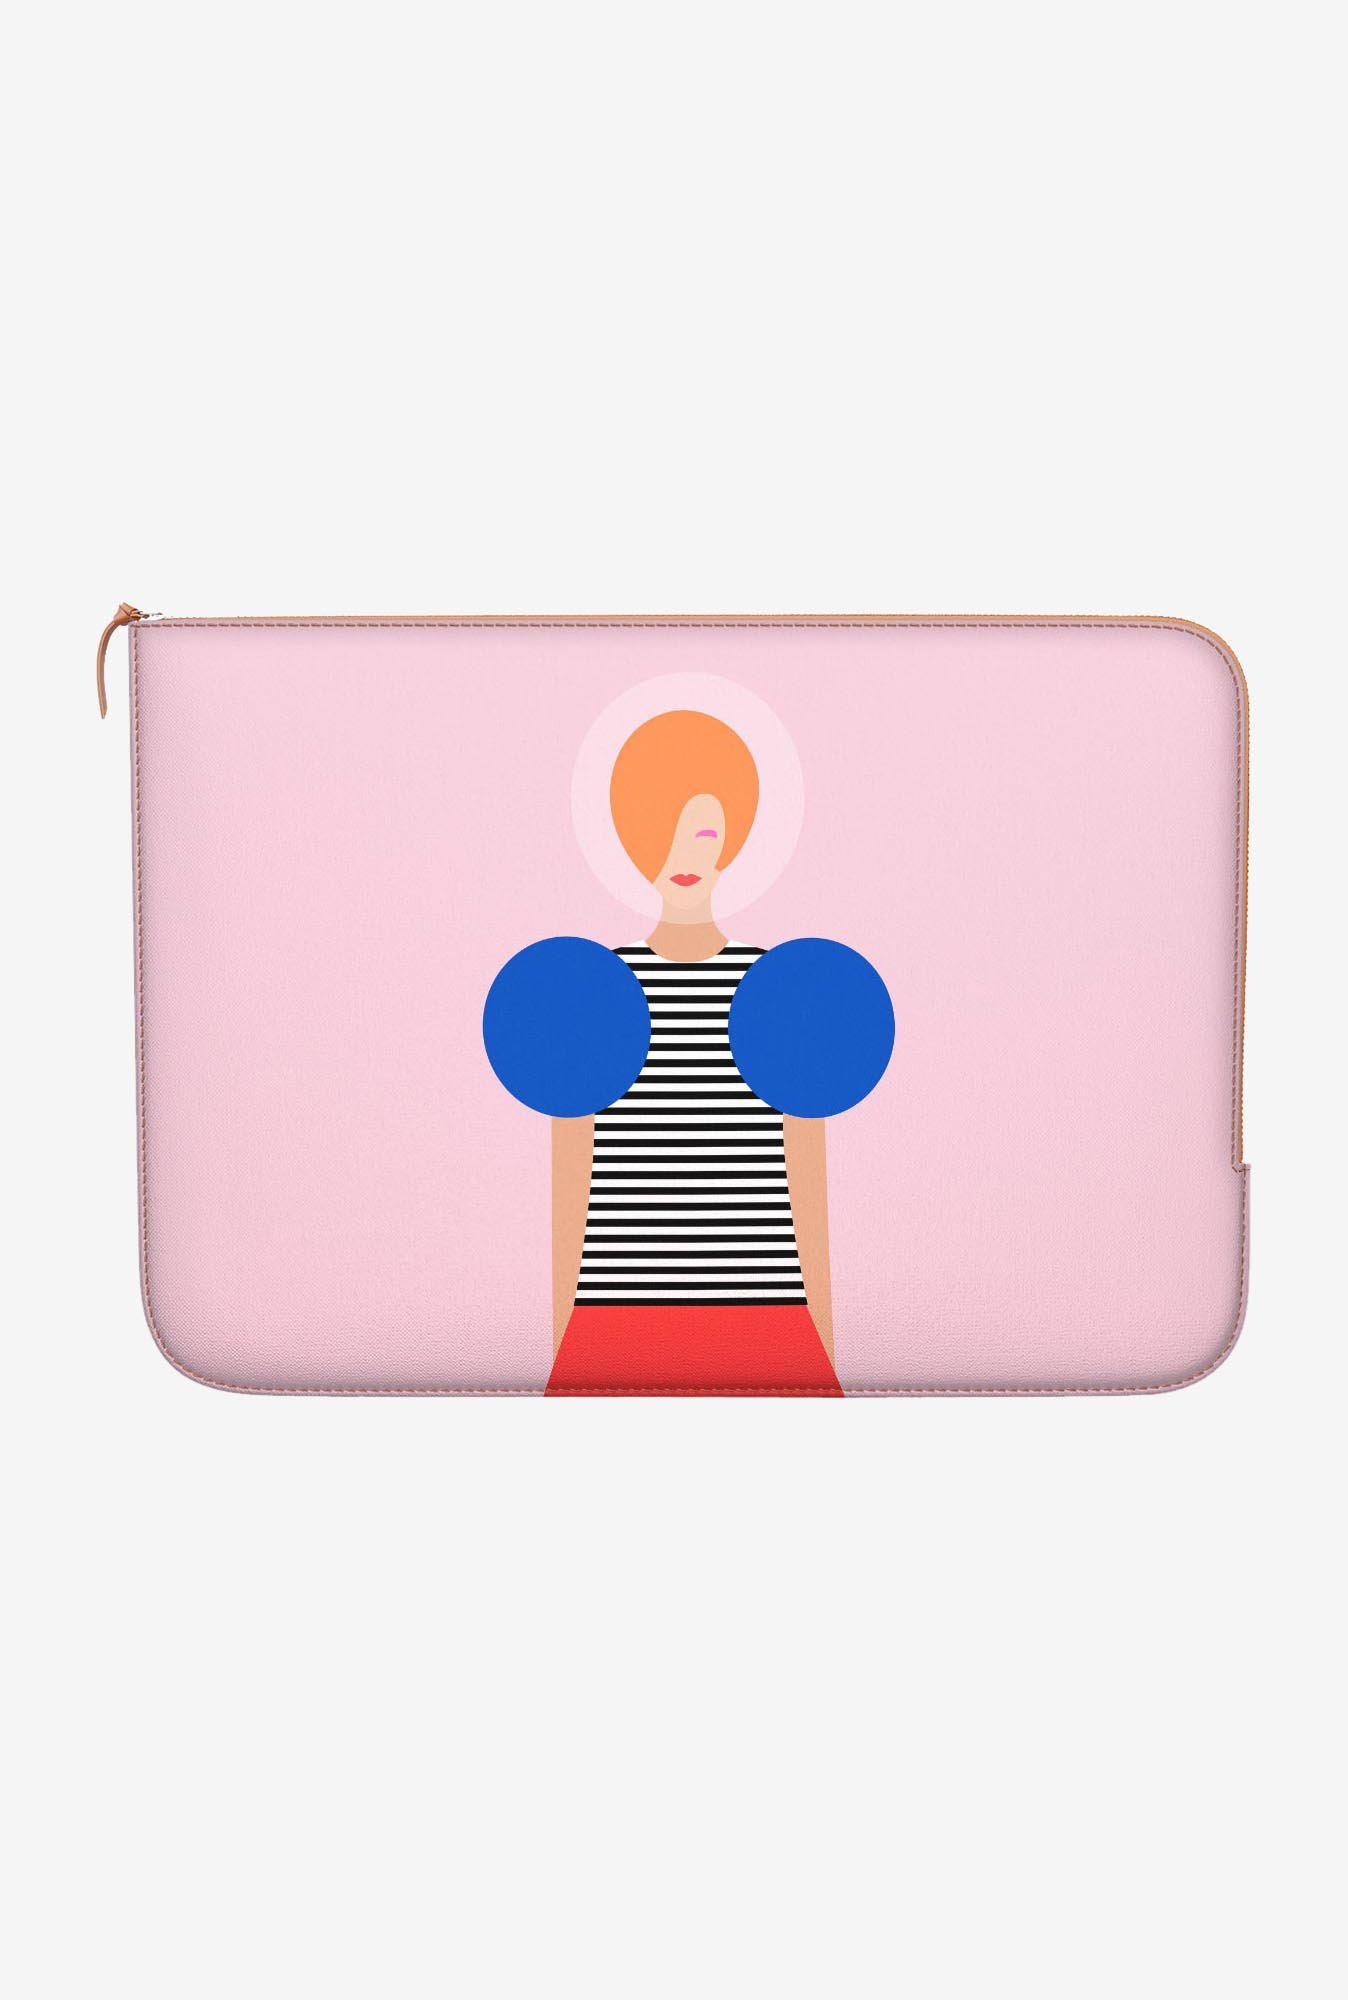 DailyObjects Watanabe Ramp MacBook Pro 13 Zippered Sleeve